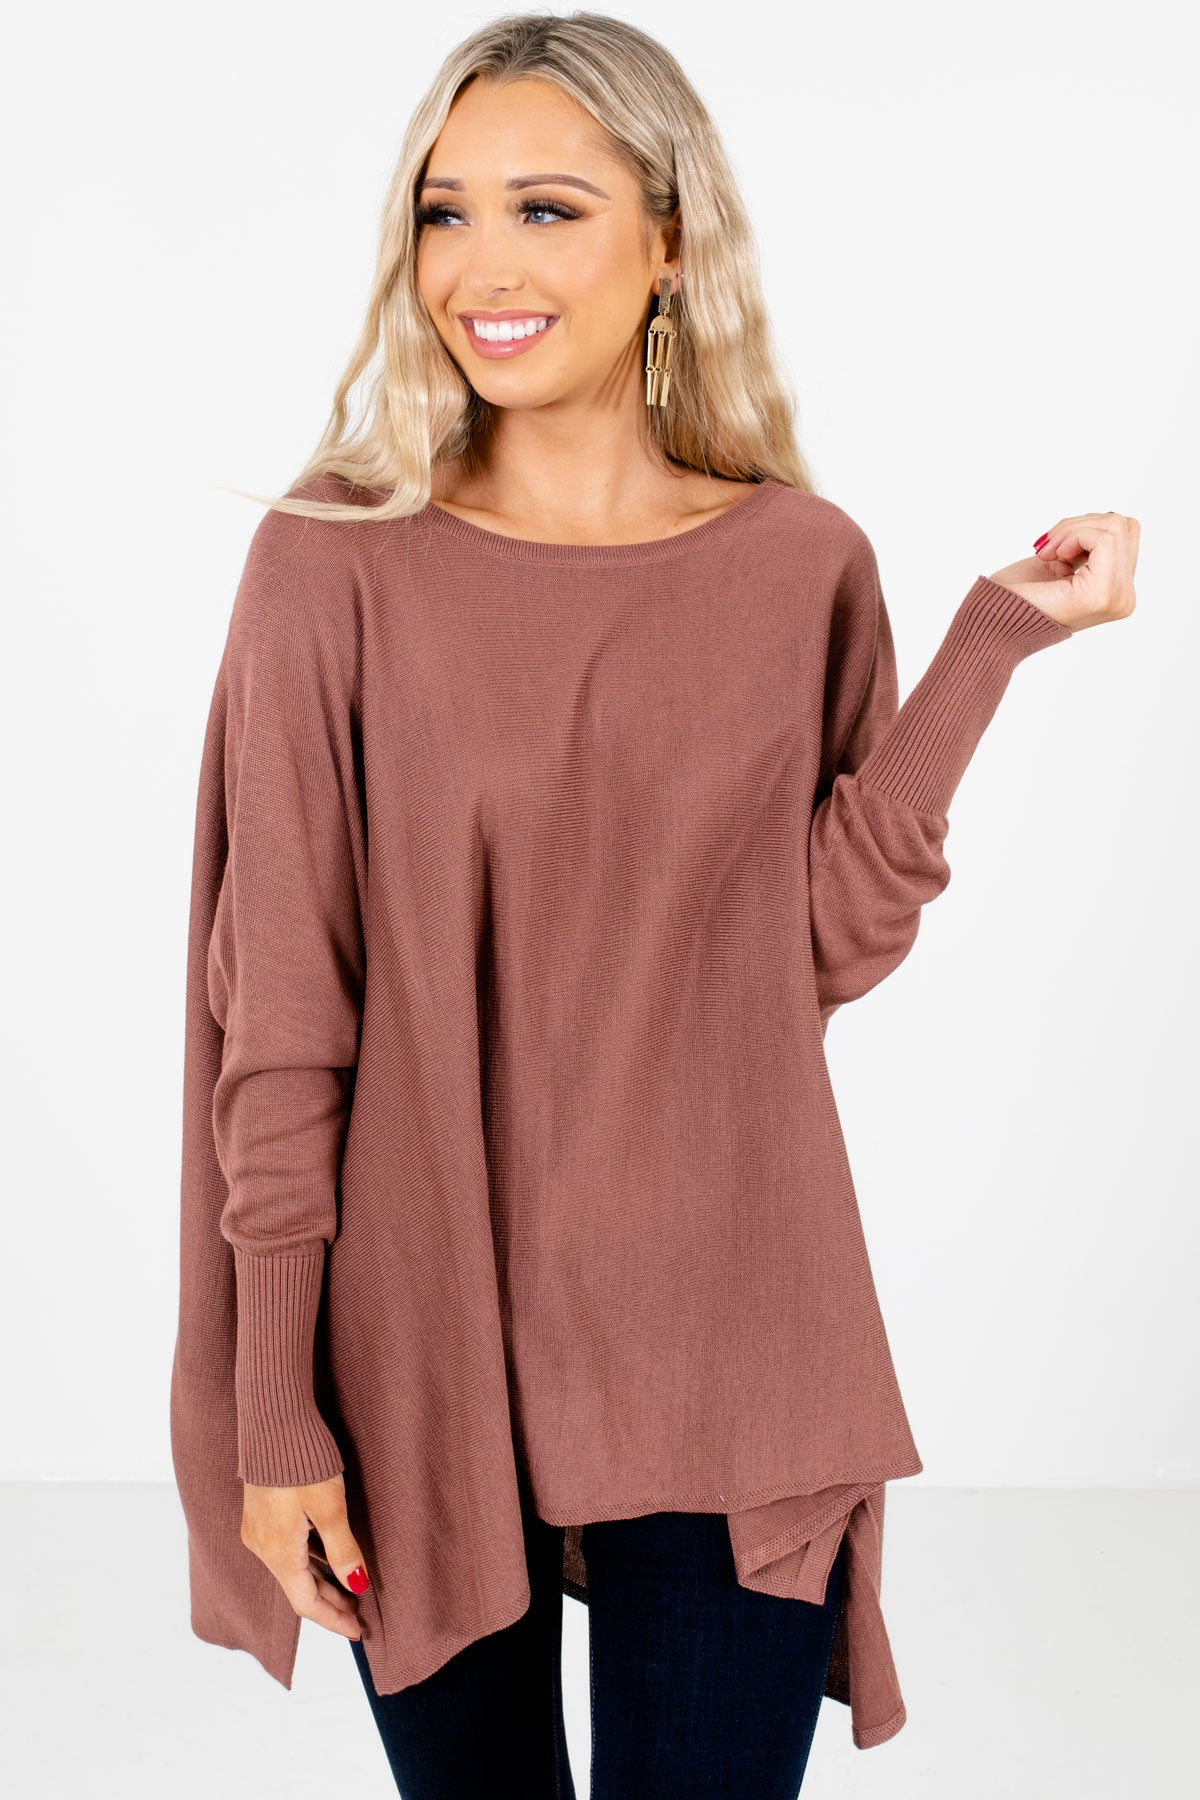 Mauve Oversized Fit Boutique Tops for Women